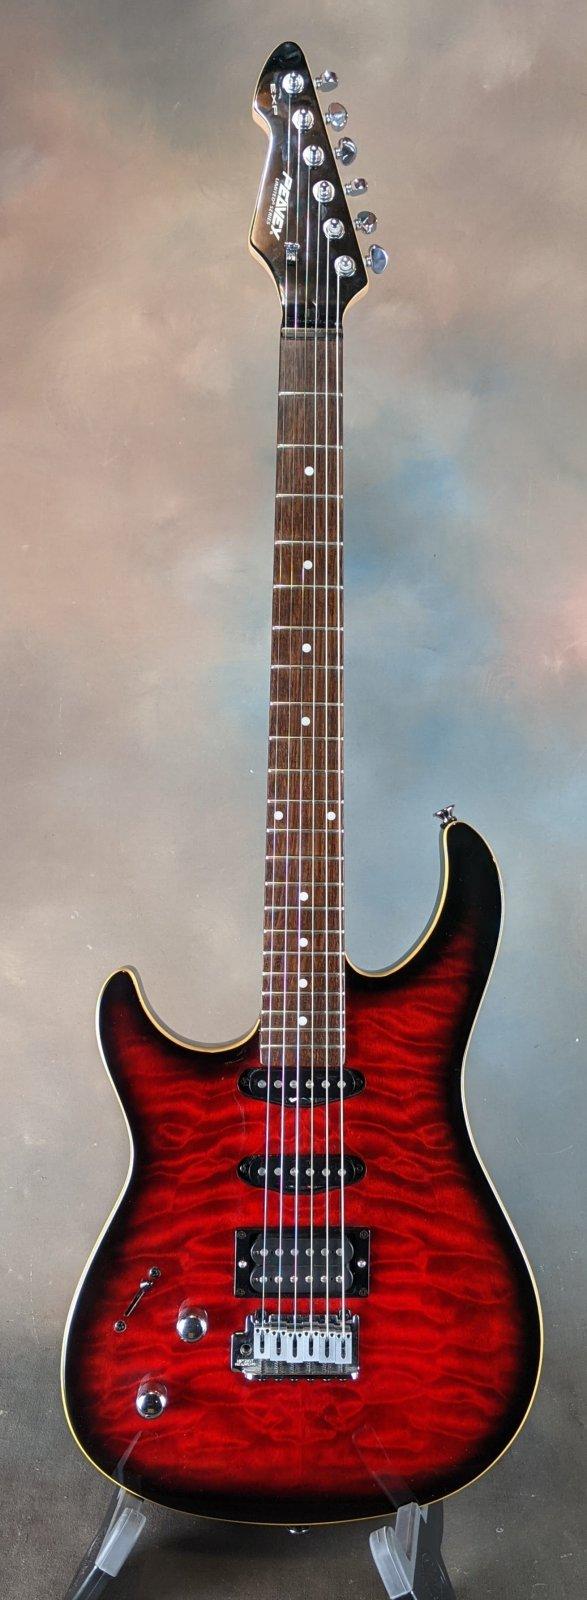 Used Peavey EXP Limited Left-Handed Electric